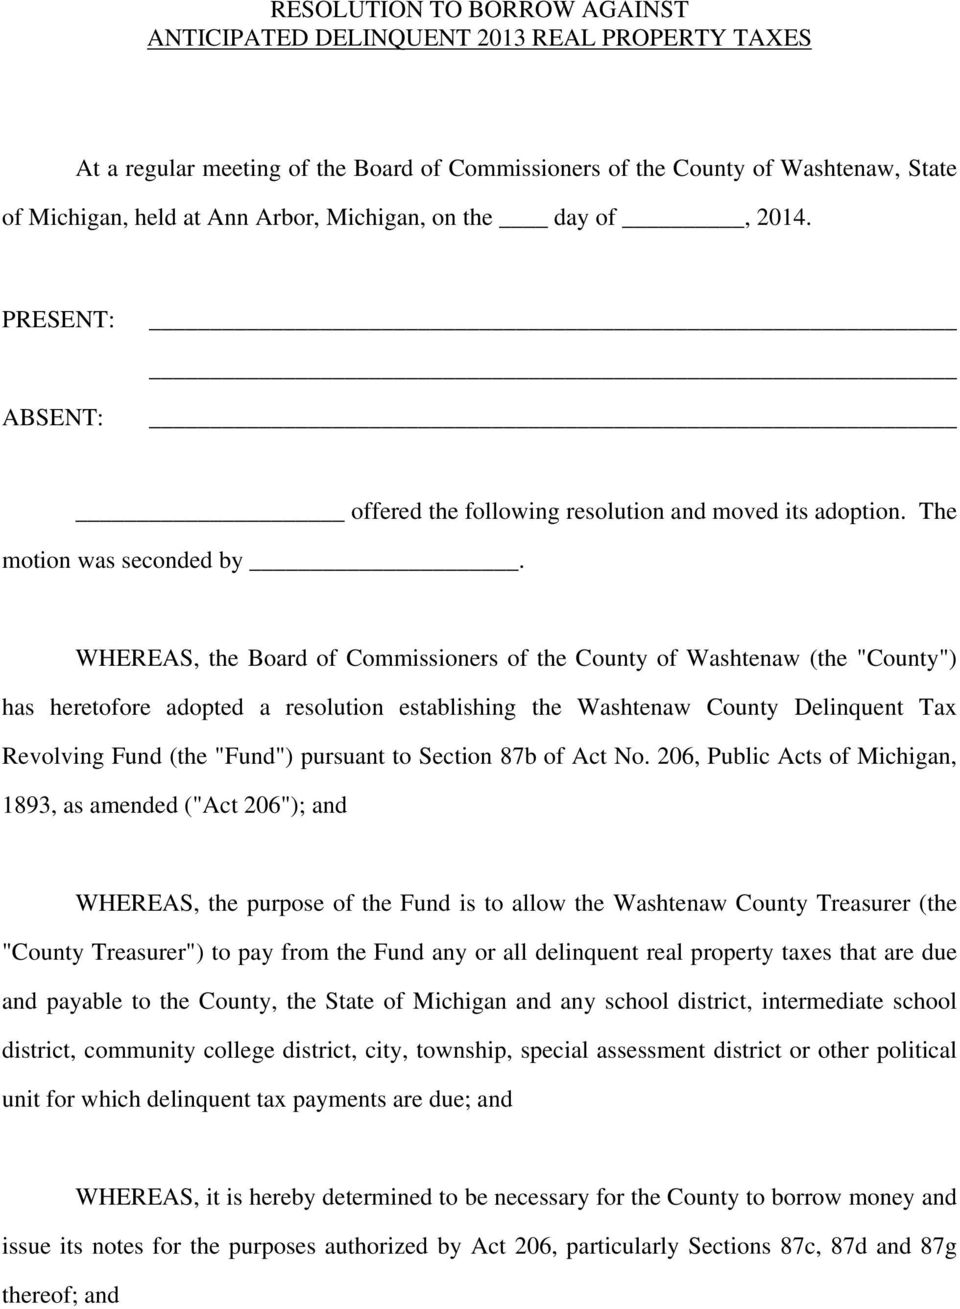 "WHEREAS, the Board of Commissioners of the County of Washtenaw (the ""County"") has heretofore adopted a resolution establishing the Washtenaw County Delinquent Tax Revolving Fund (the ""Fund"") pursuant"